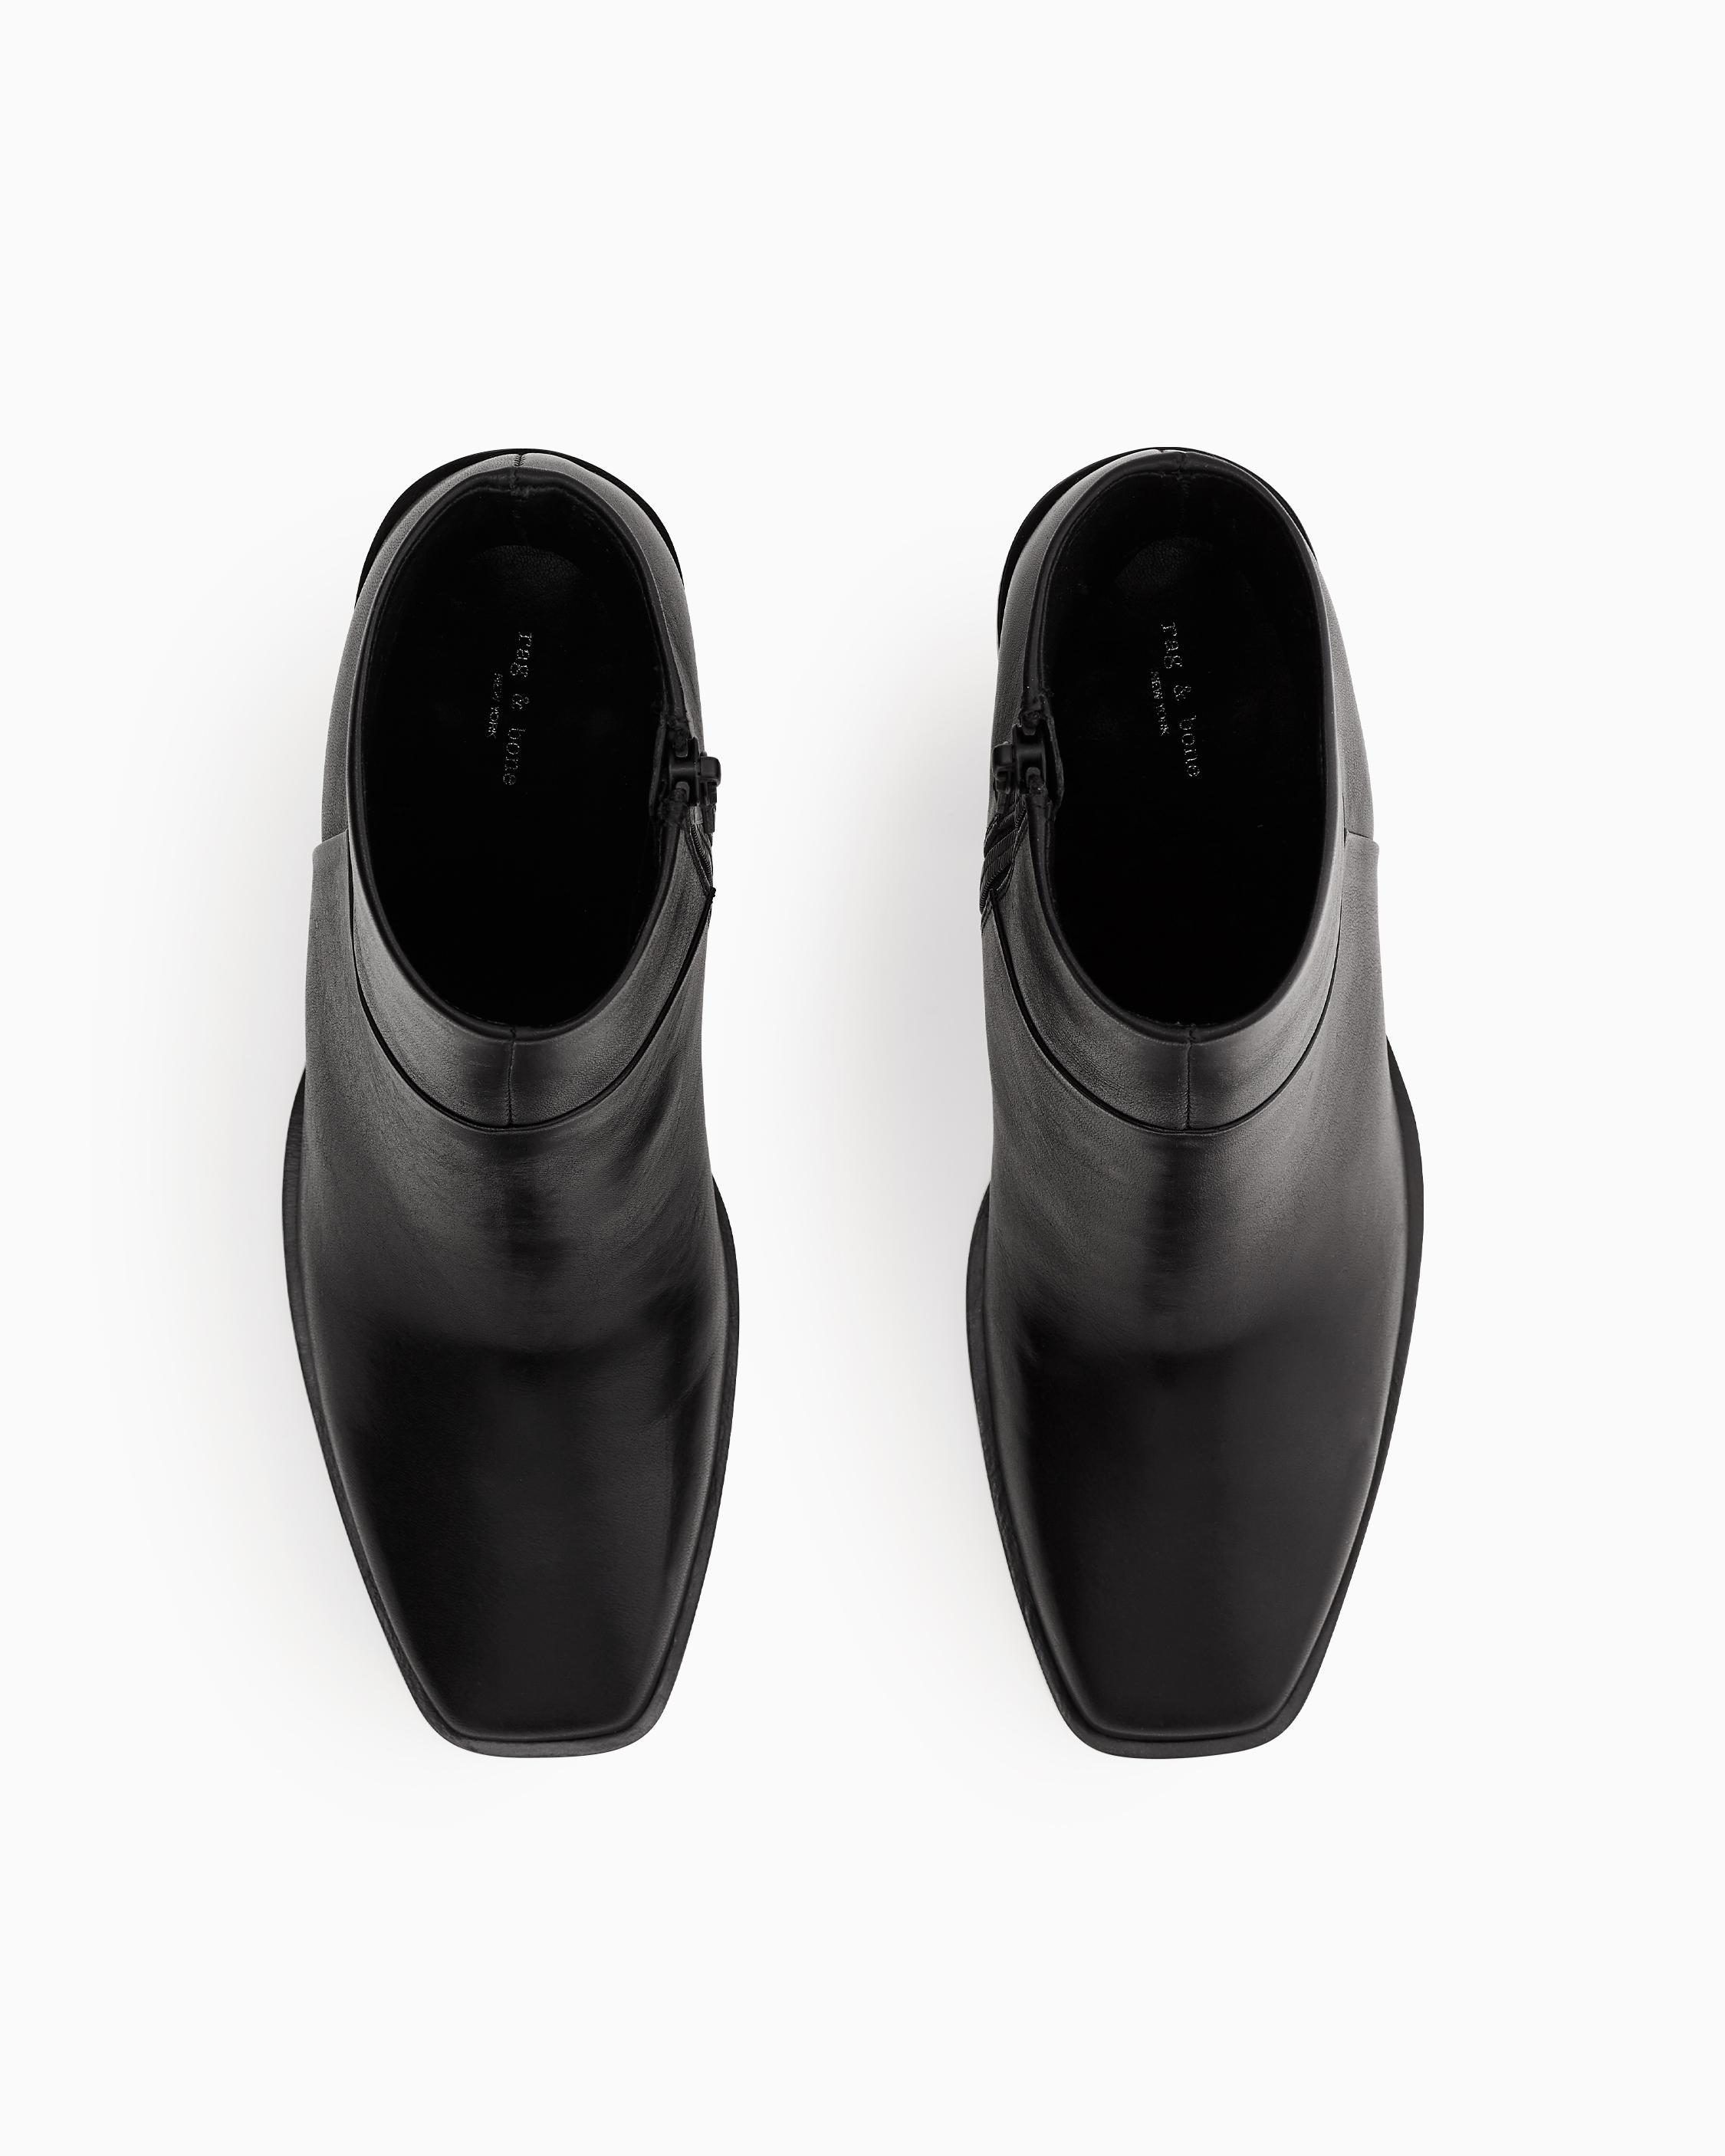 Axel zip up boot - leather 2